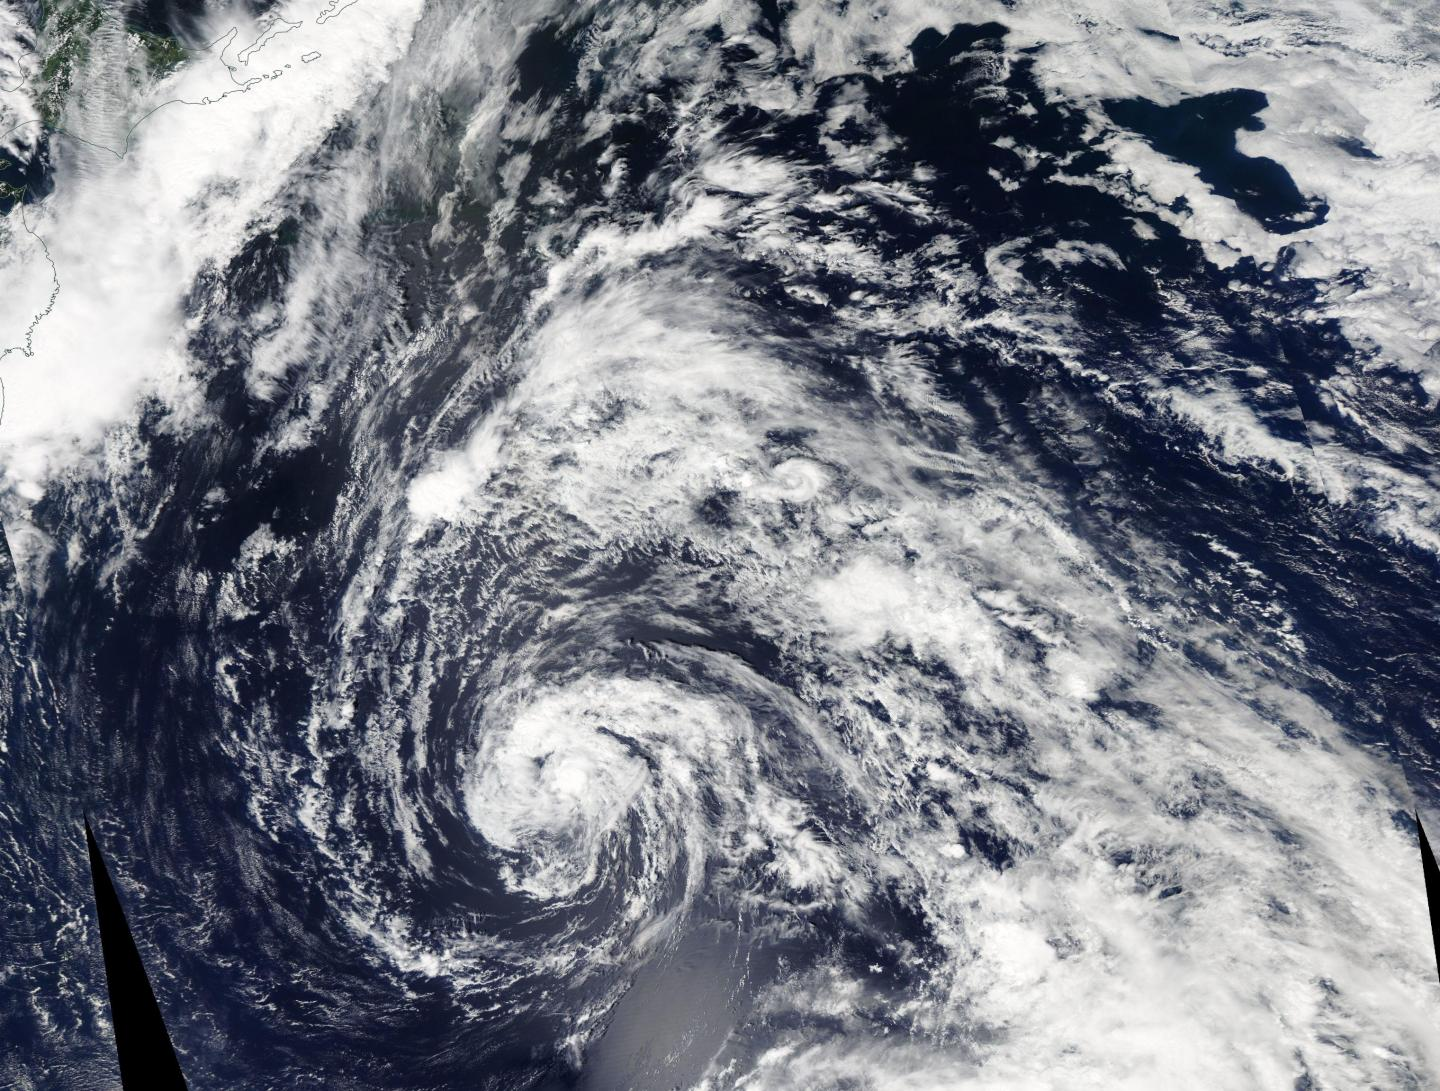 NASA sees Tropical Storm 12W over the open Northwestern Pacific Ocean